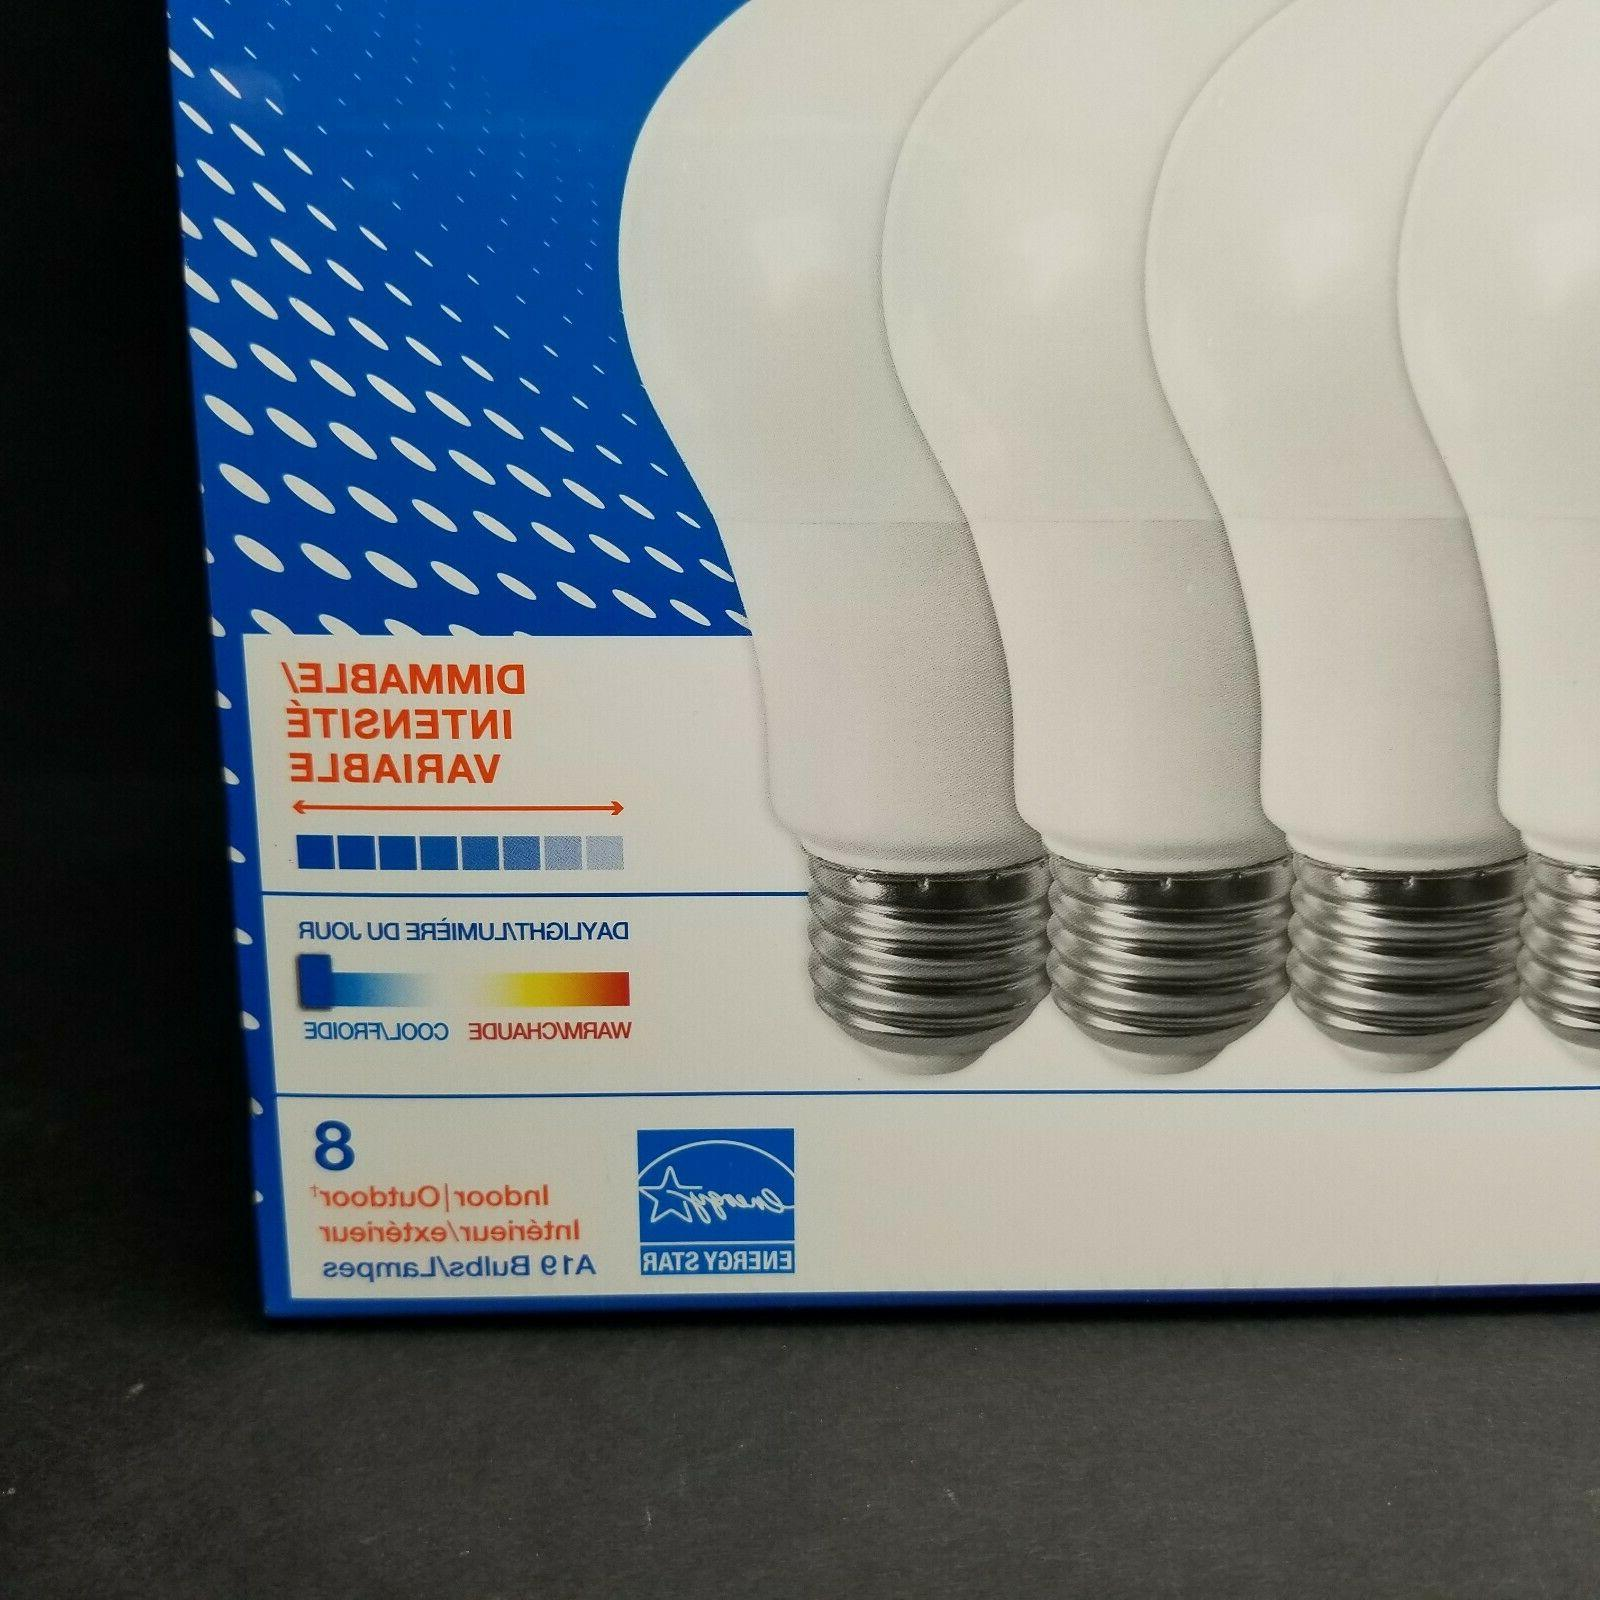 8 Sylvania A19 Daylight 800 Dimmable Star New